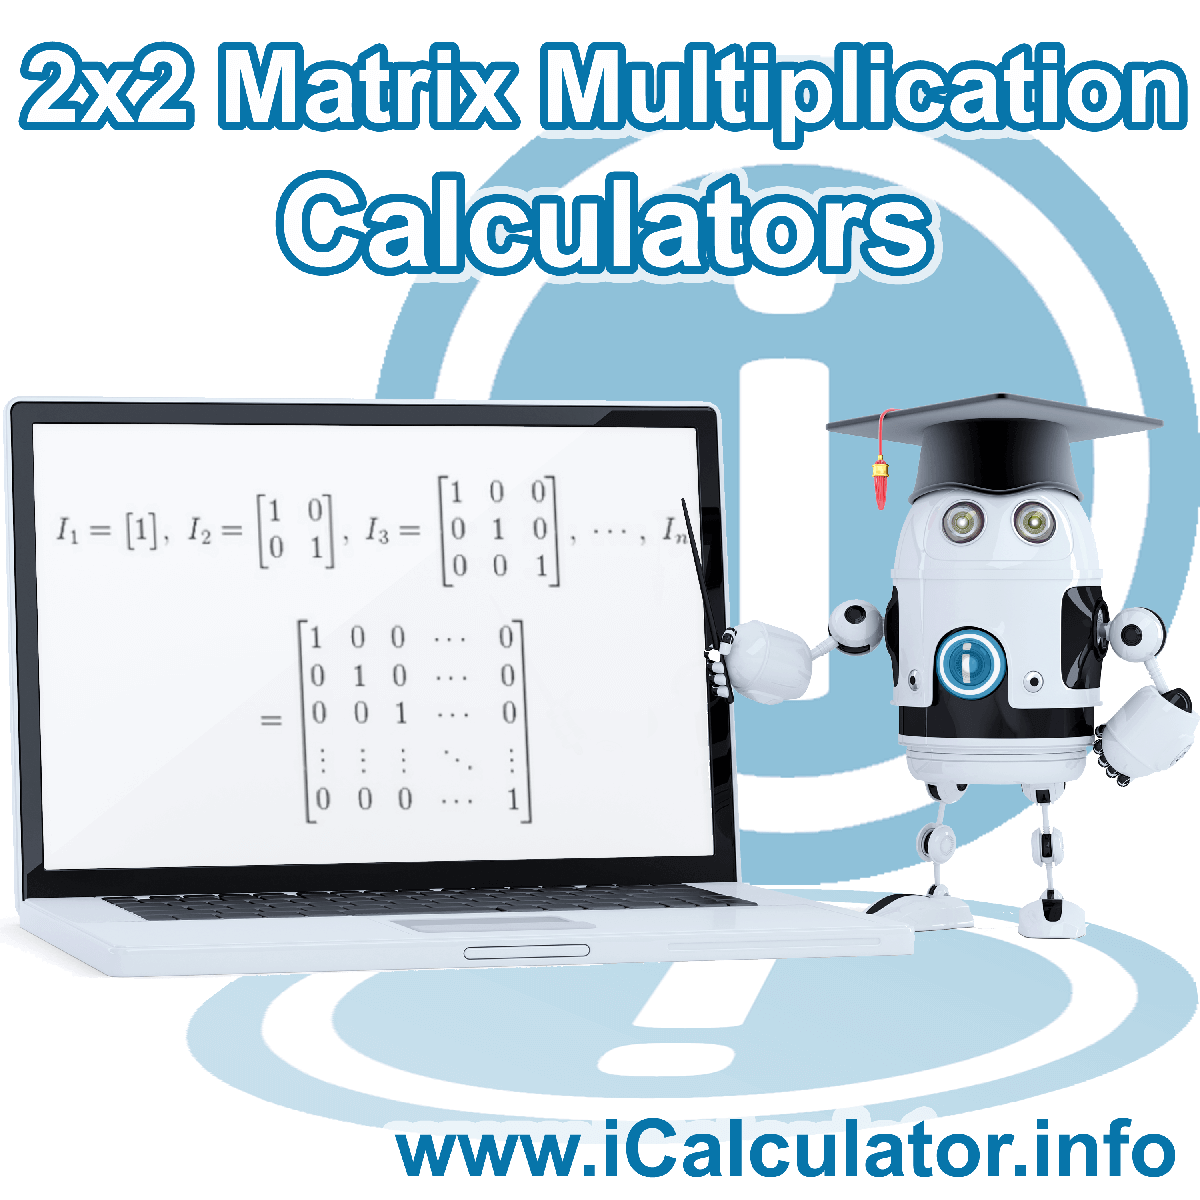 2x2 Matrix Multiplication Calculator. This image shows the properties and Matrix formula for the 2x2 Matrix Multiplication Calculator